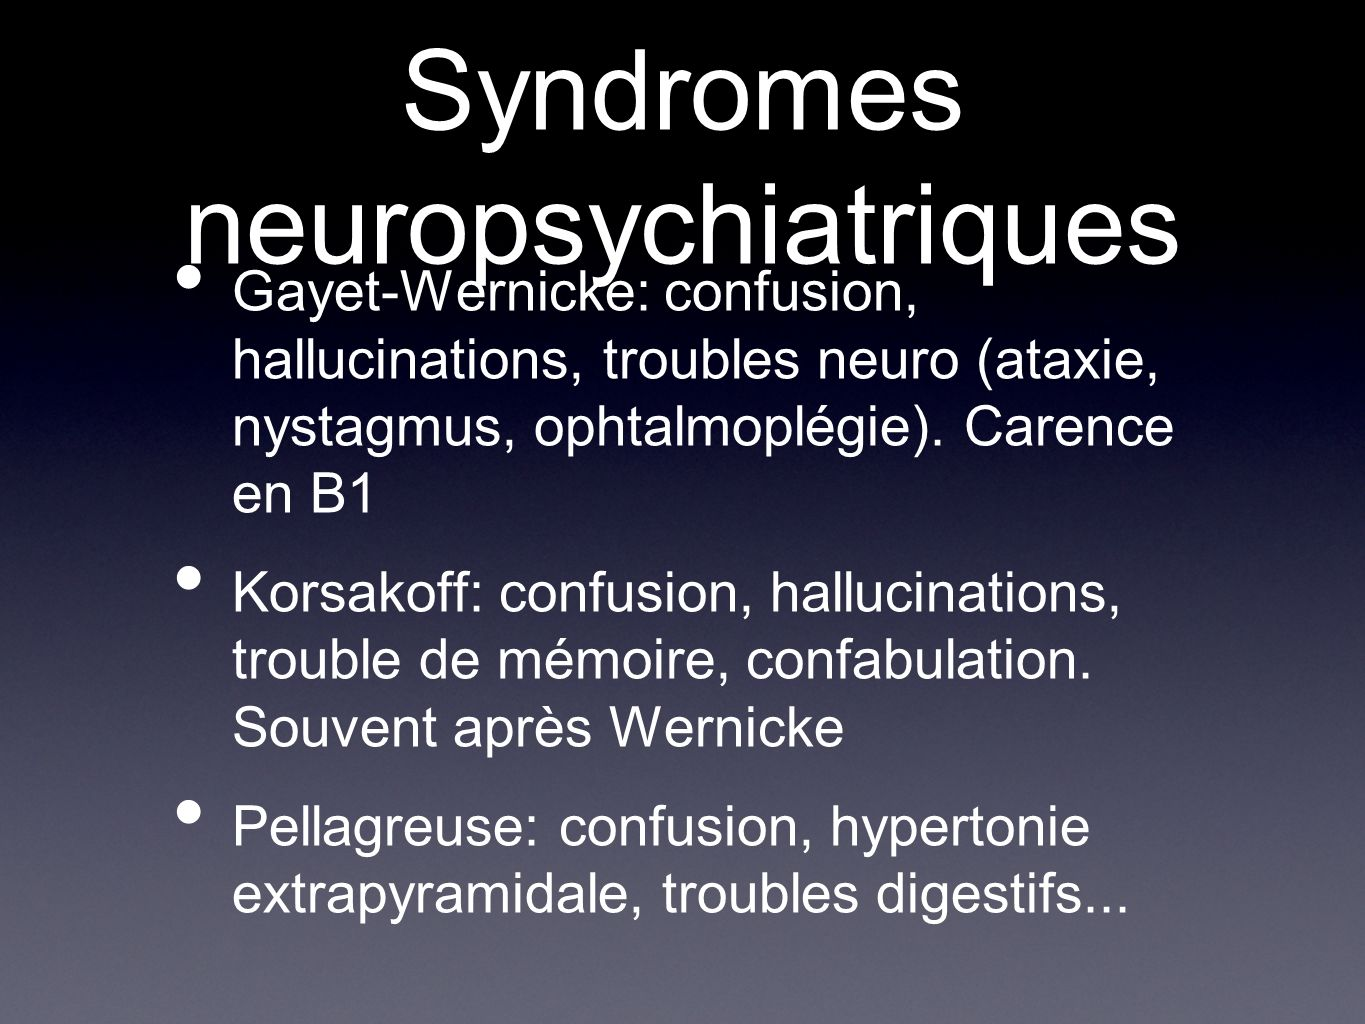 Syndromes neuropsychiatriques Gayet-Wernicke: confusion, hallucinations, troubles neuro (ataxie, nystagmus, ophtalmoplégie). Carence en B1 Korsakoff: